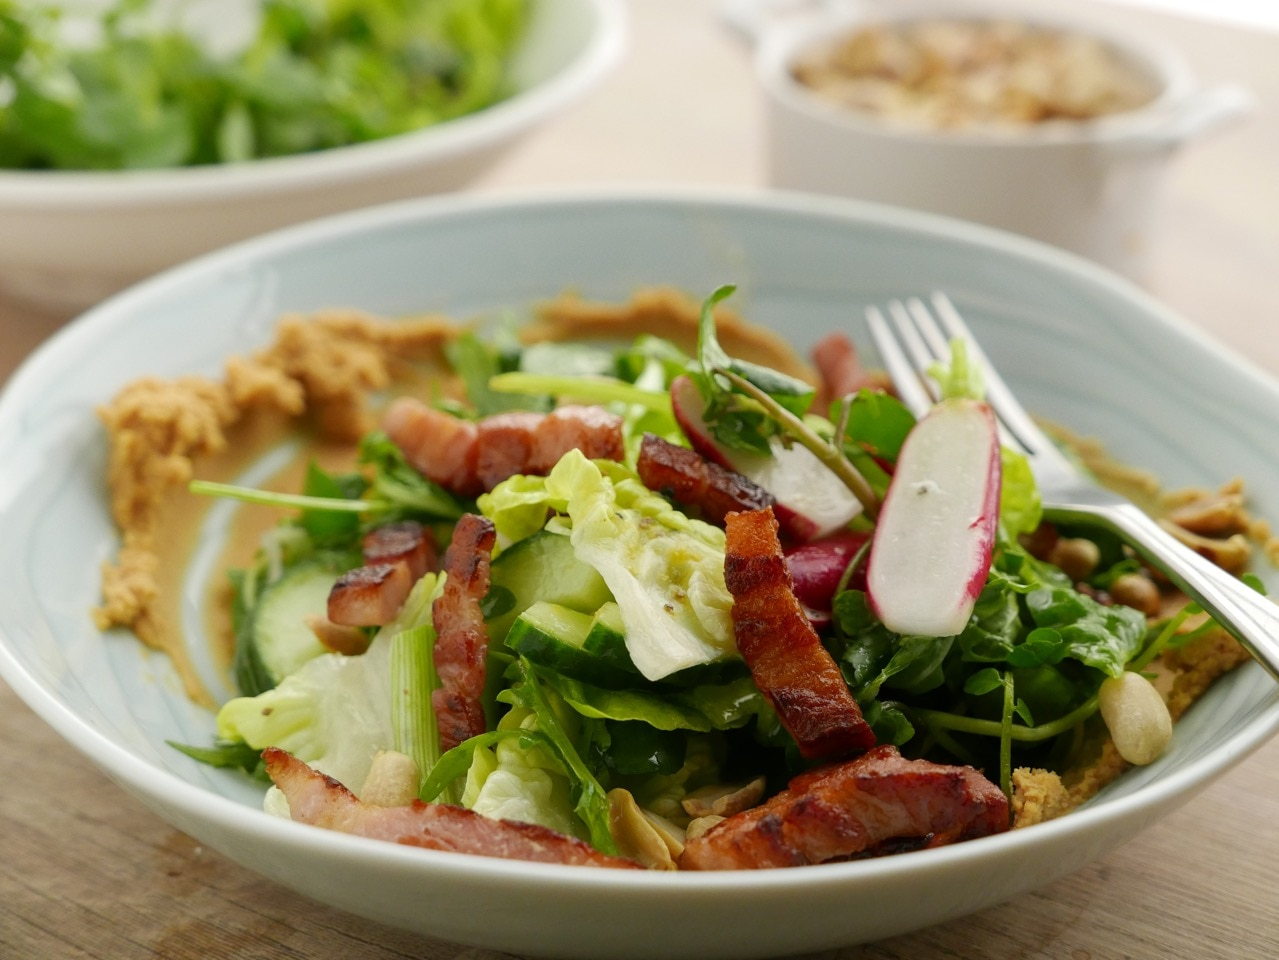 Bacon and Satay Salad